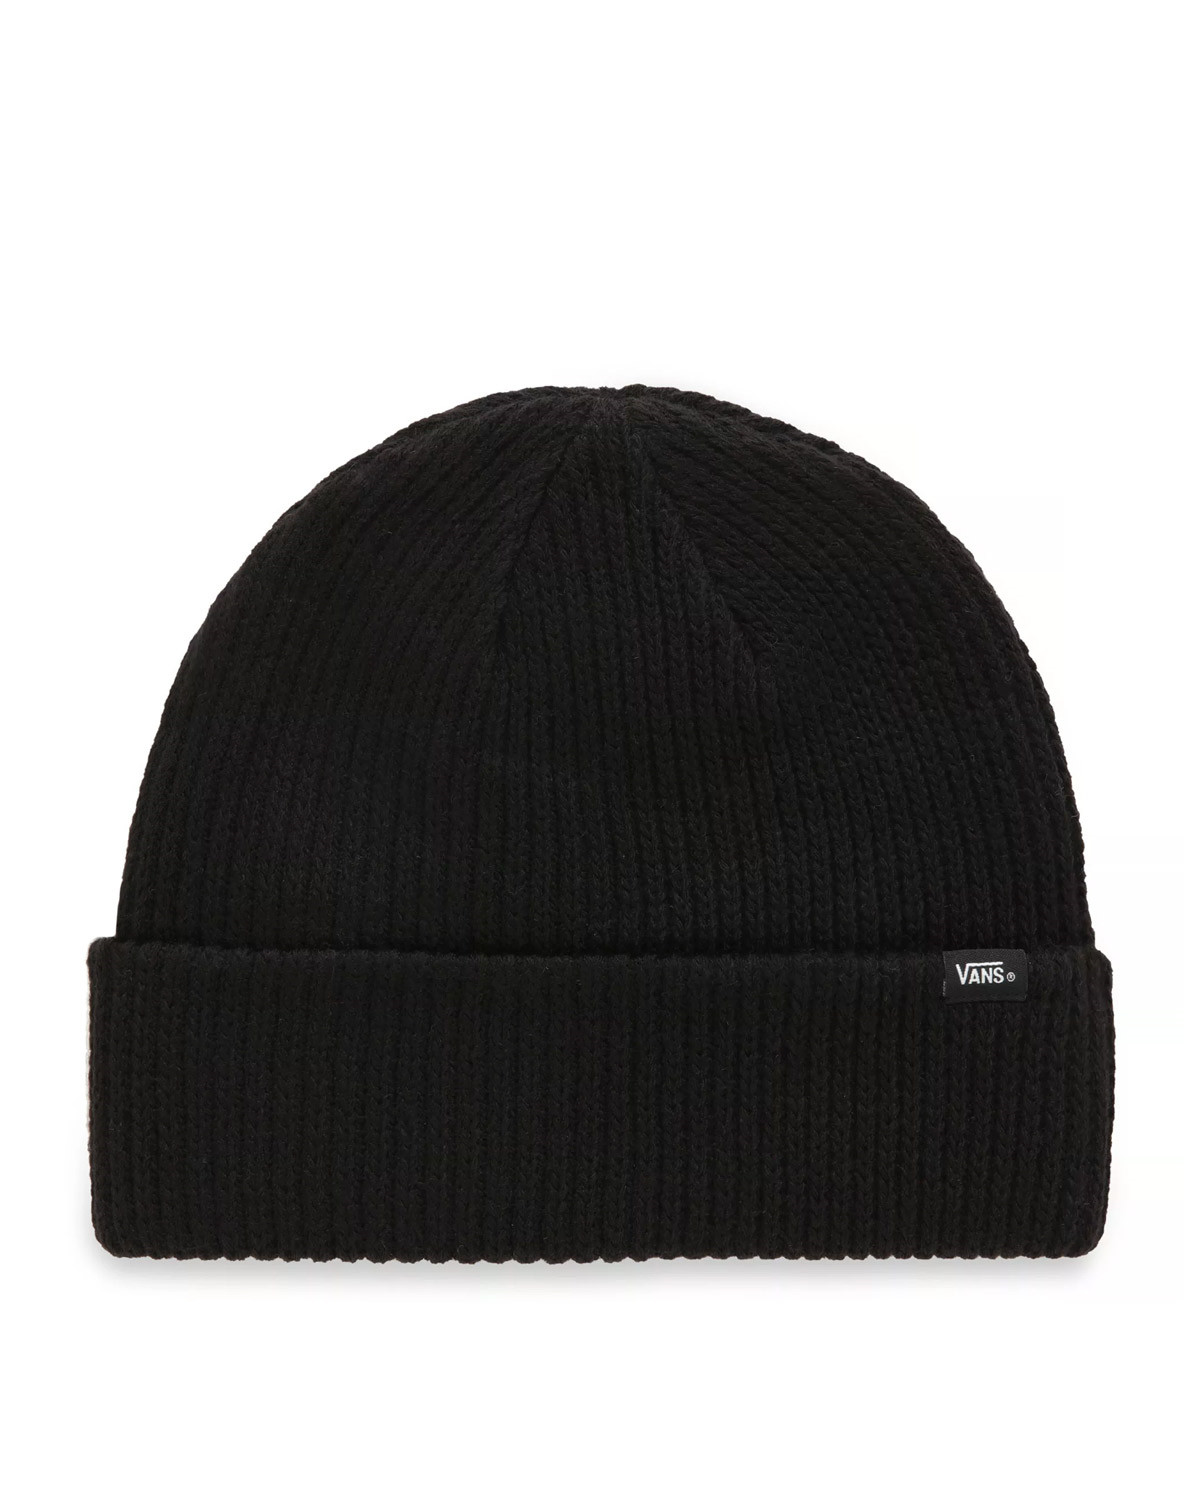 Image of   VANS Core Basics Beanie (Sort, One Size)